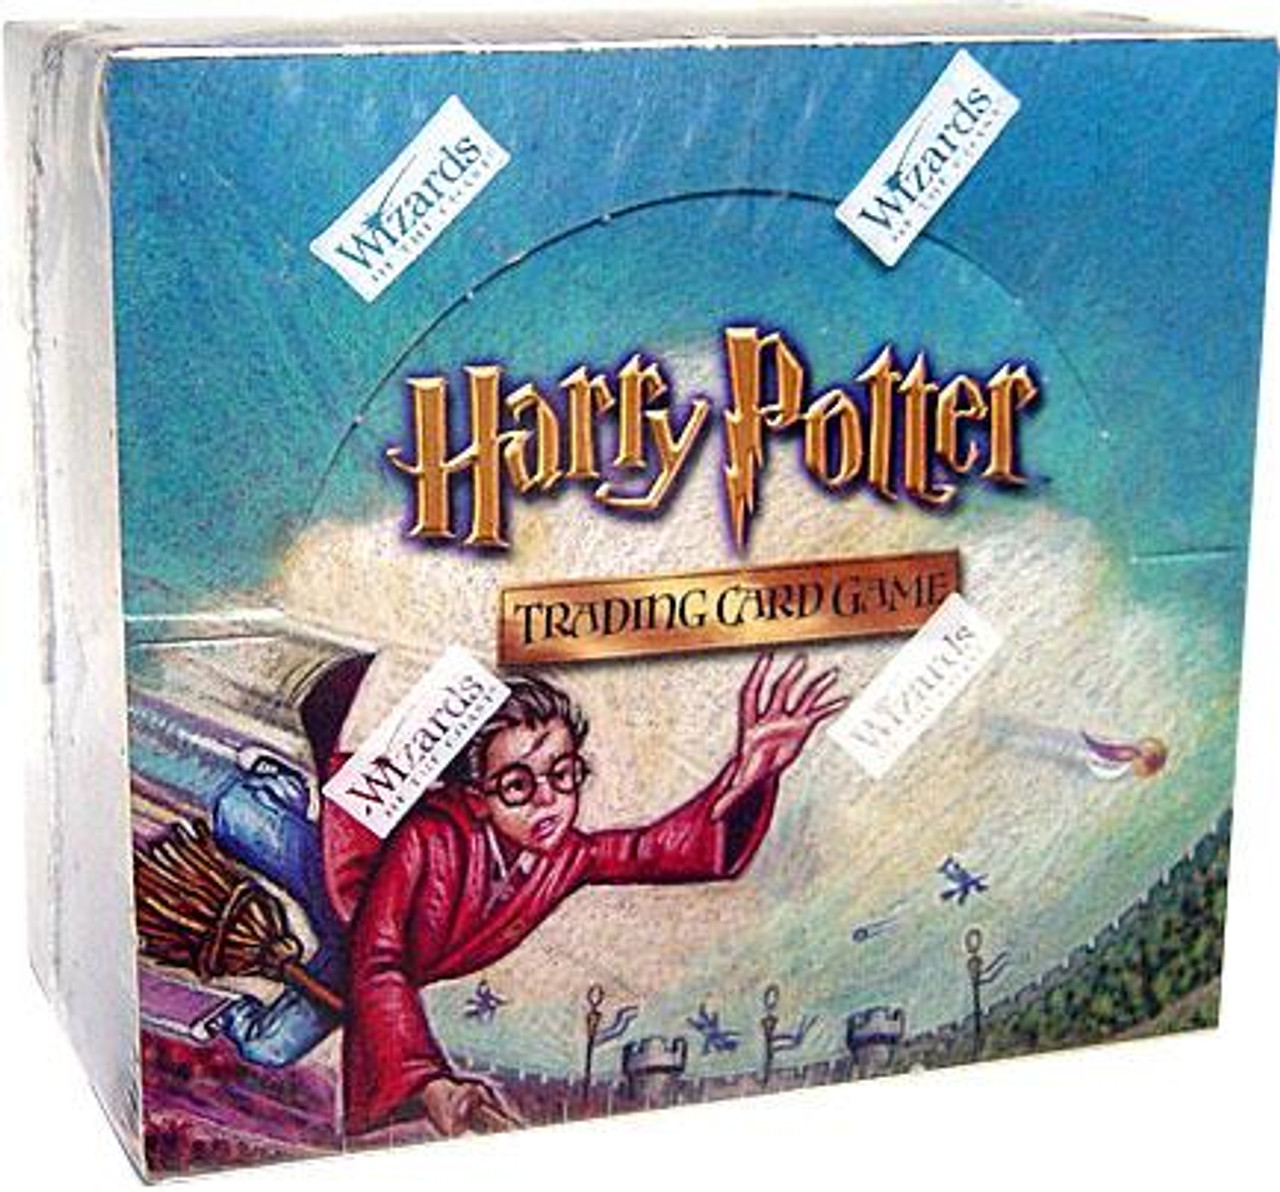 Harry Potter Trading Card Game Quidditch Cup Booster Box [36 Packs]